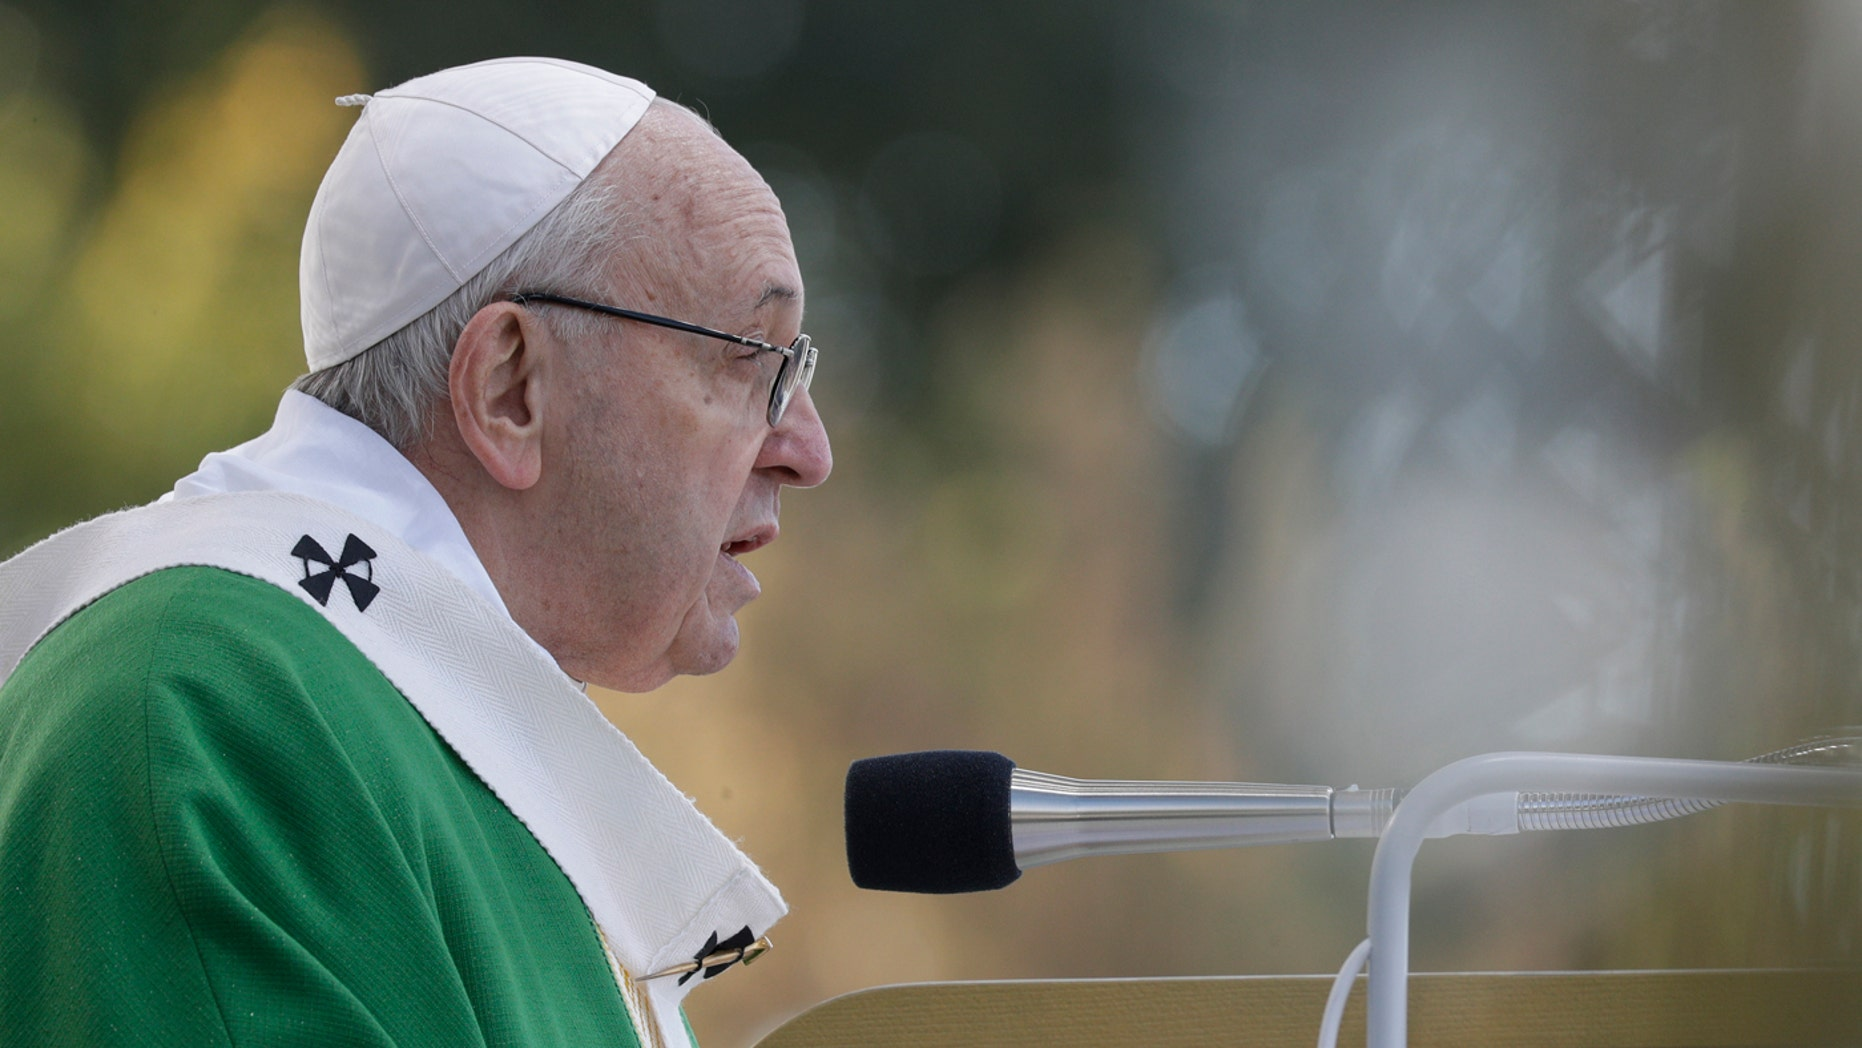 Pope Francis delivers his message as he celebrates Mass at the Santakos Park, in Kaunas, Lithuania, Sunday, Sept. 23, 2018.